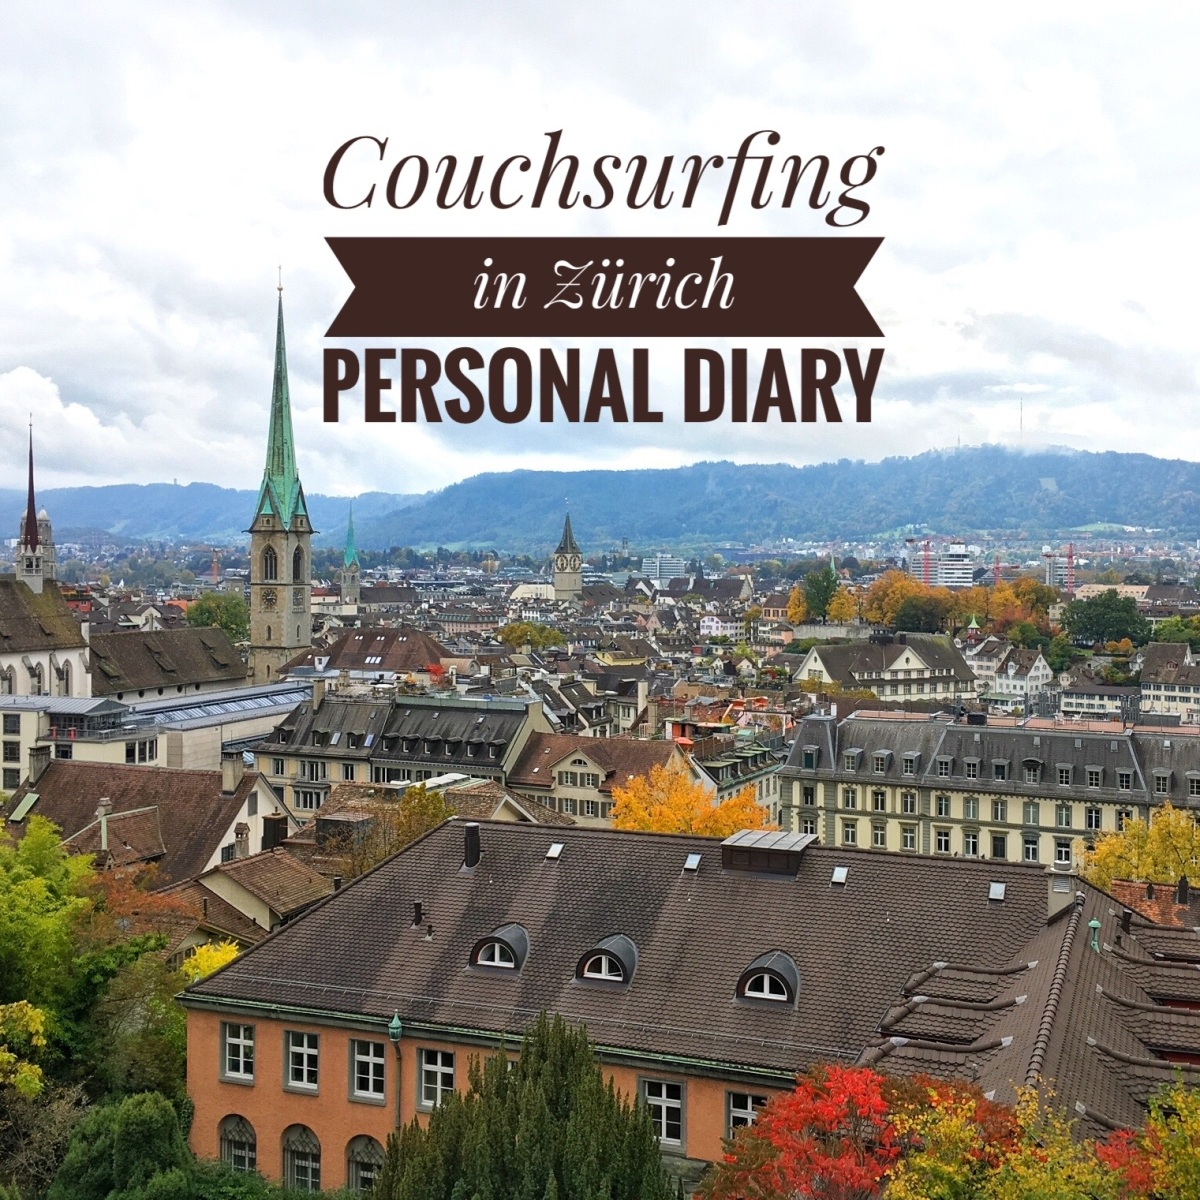 Couchsurfing in Zürich - Personal Diary